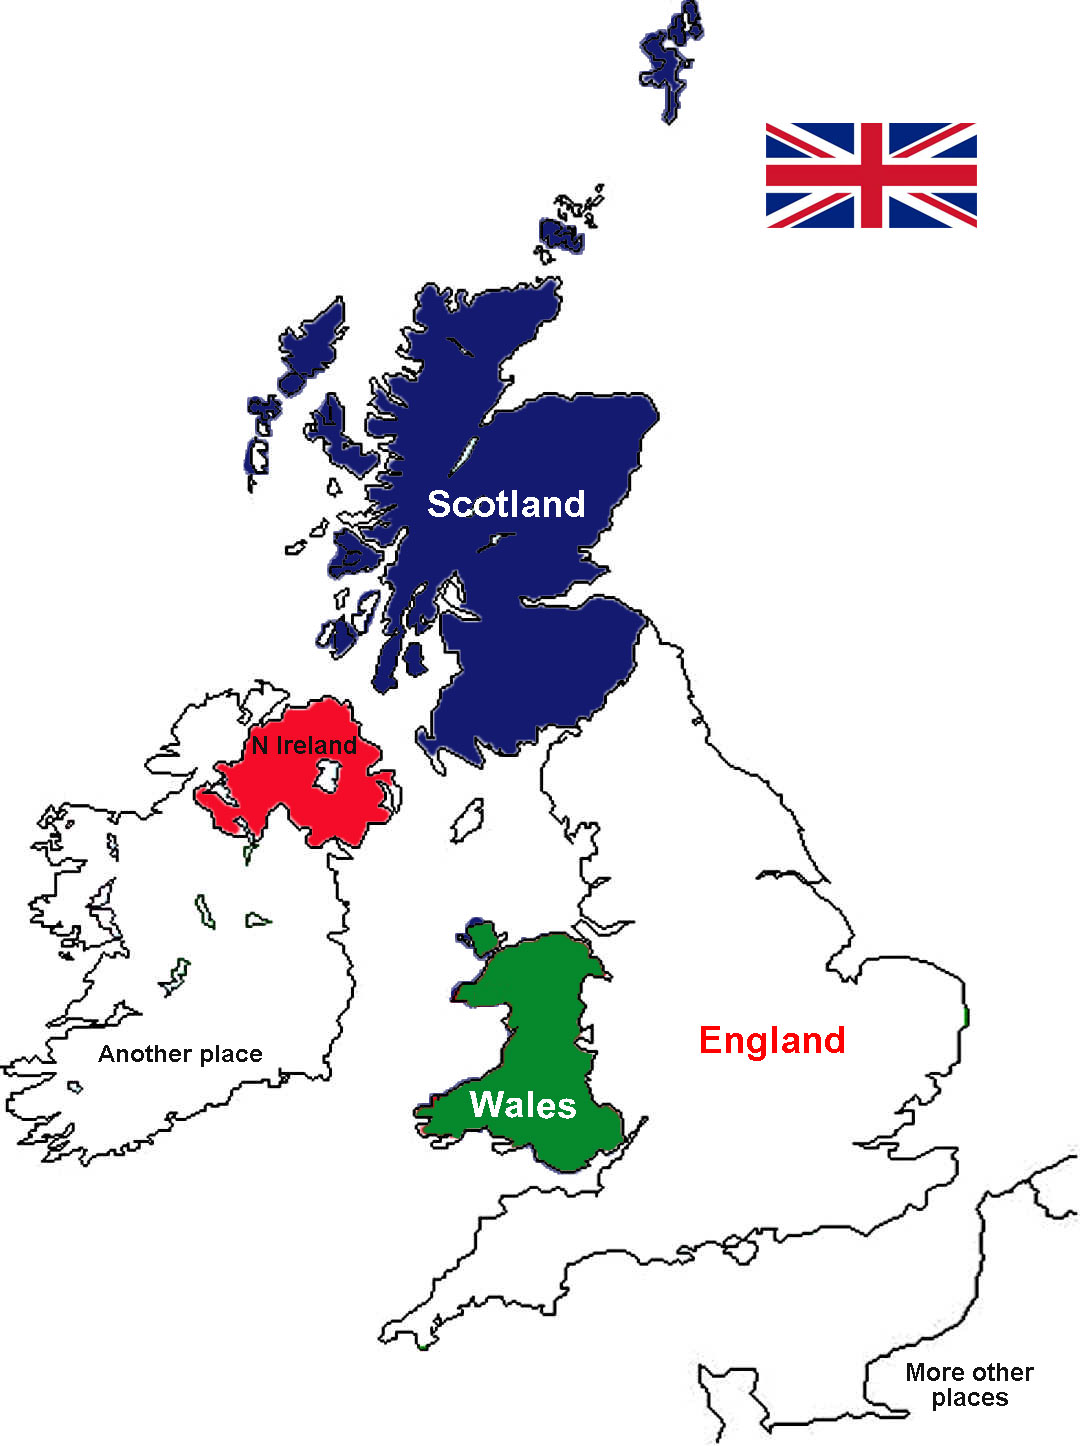 Map Of England Wales Scotland.What Does Britain Mean A Bit About Britain